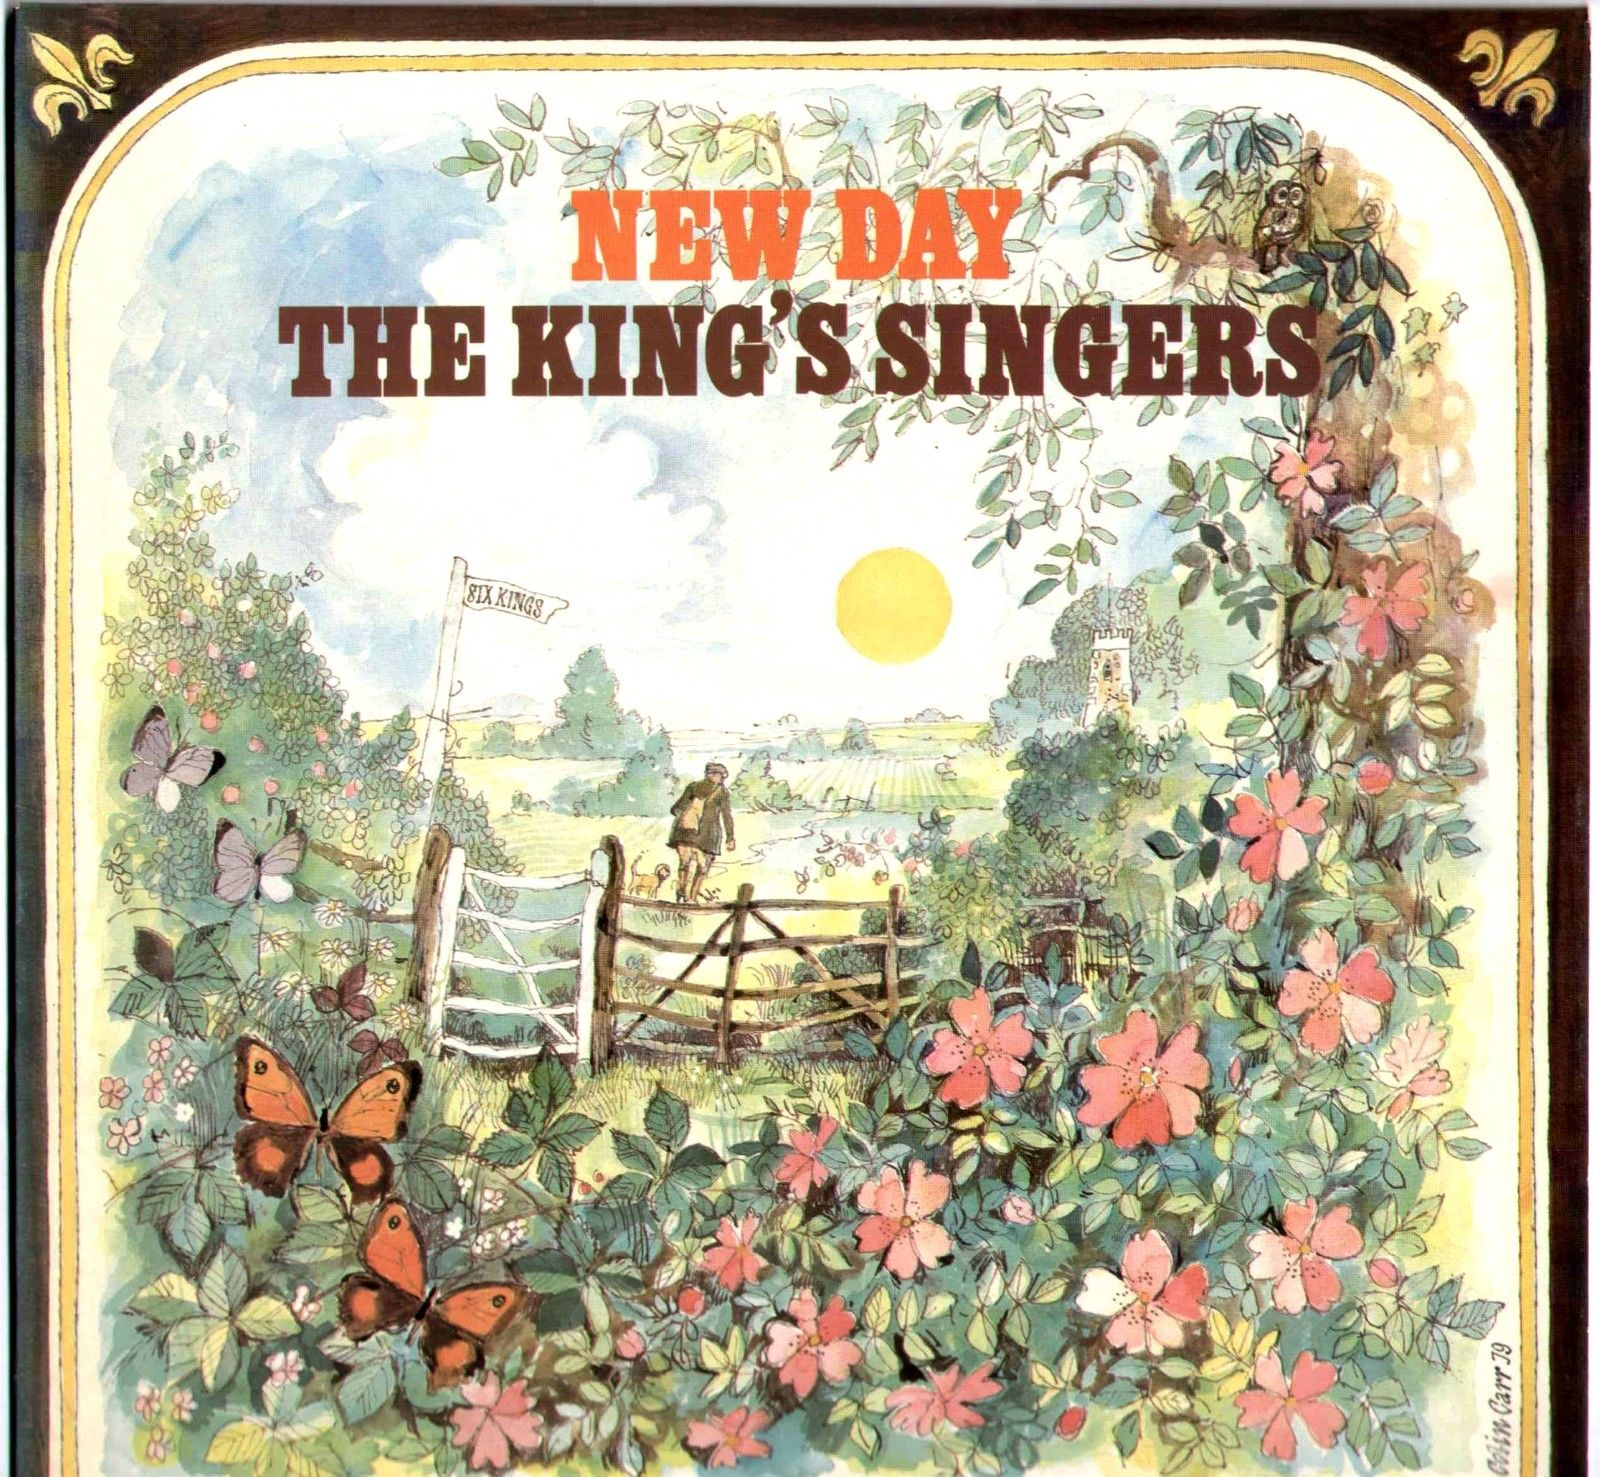 The King's Singers - New Day Album Cover